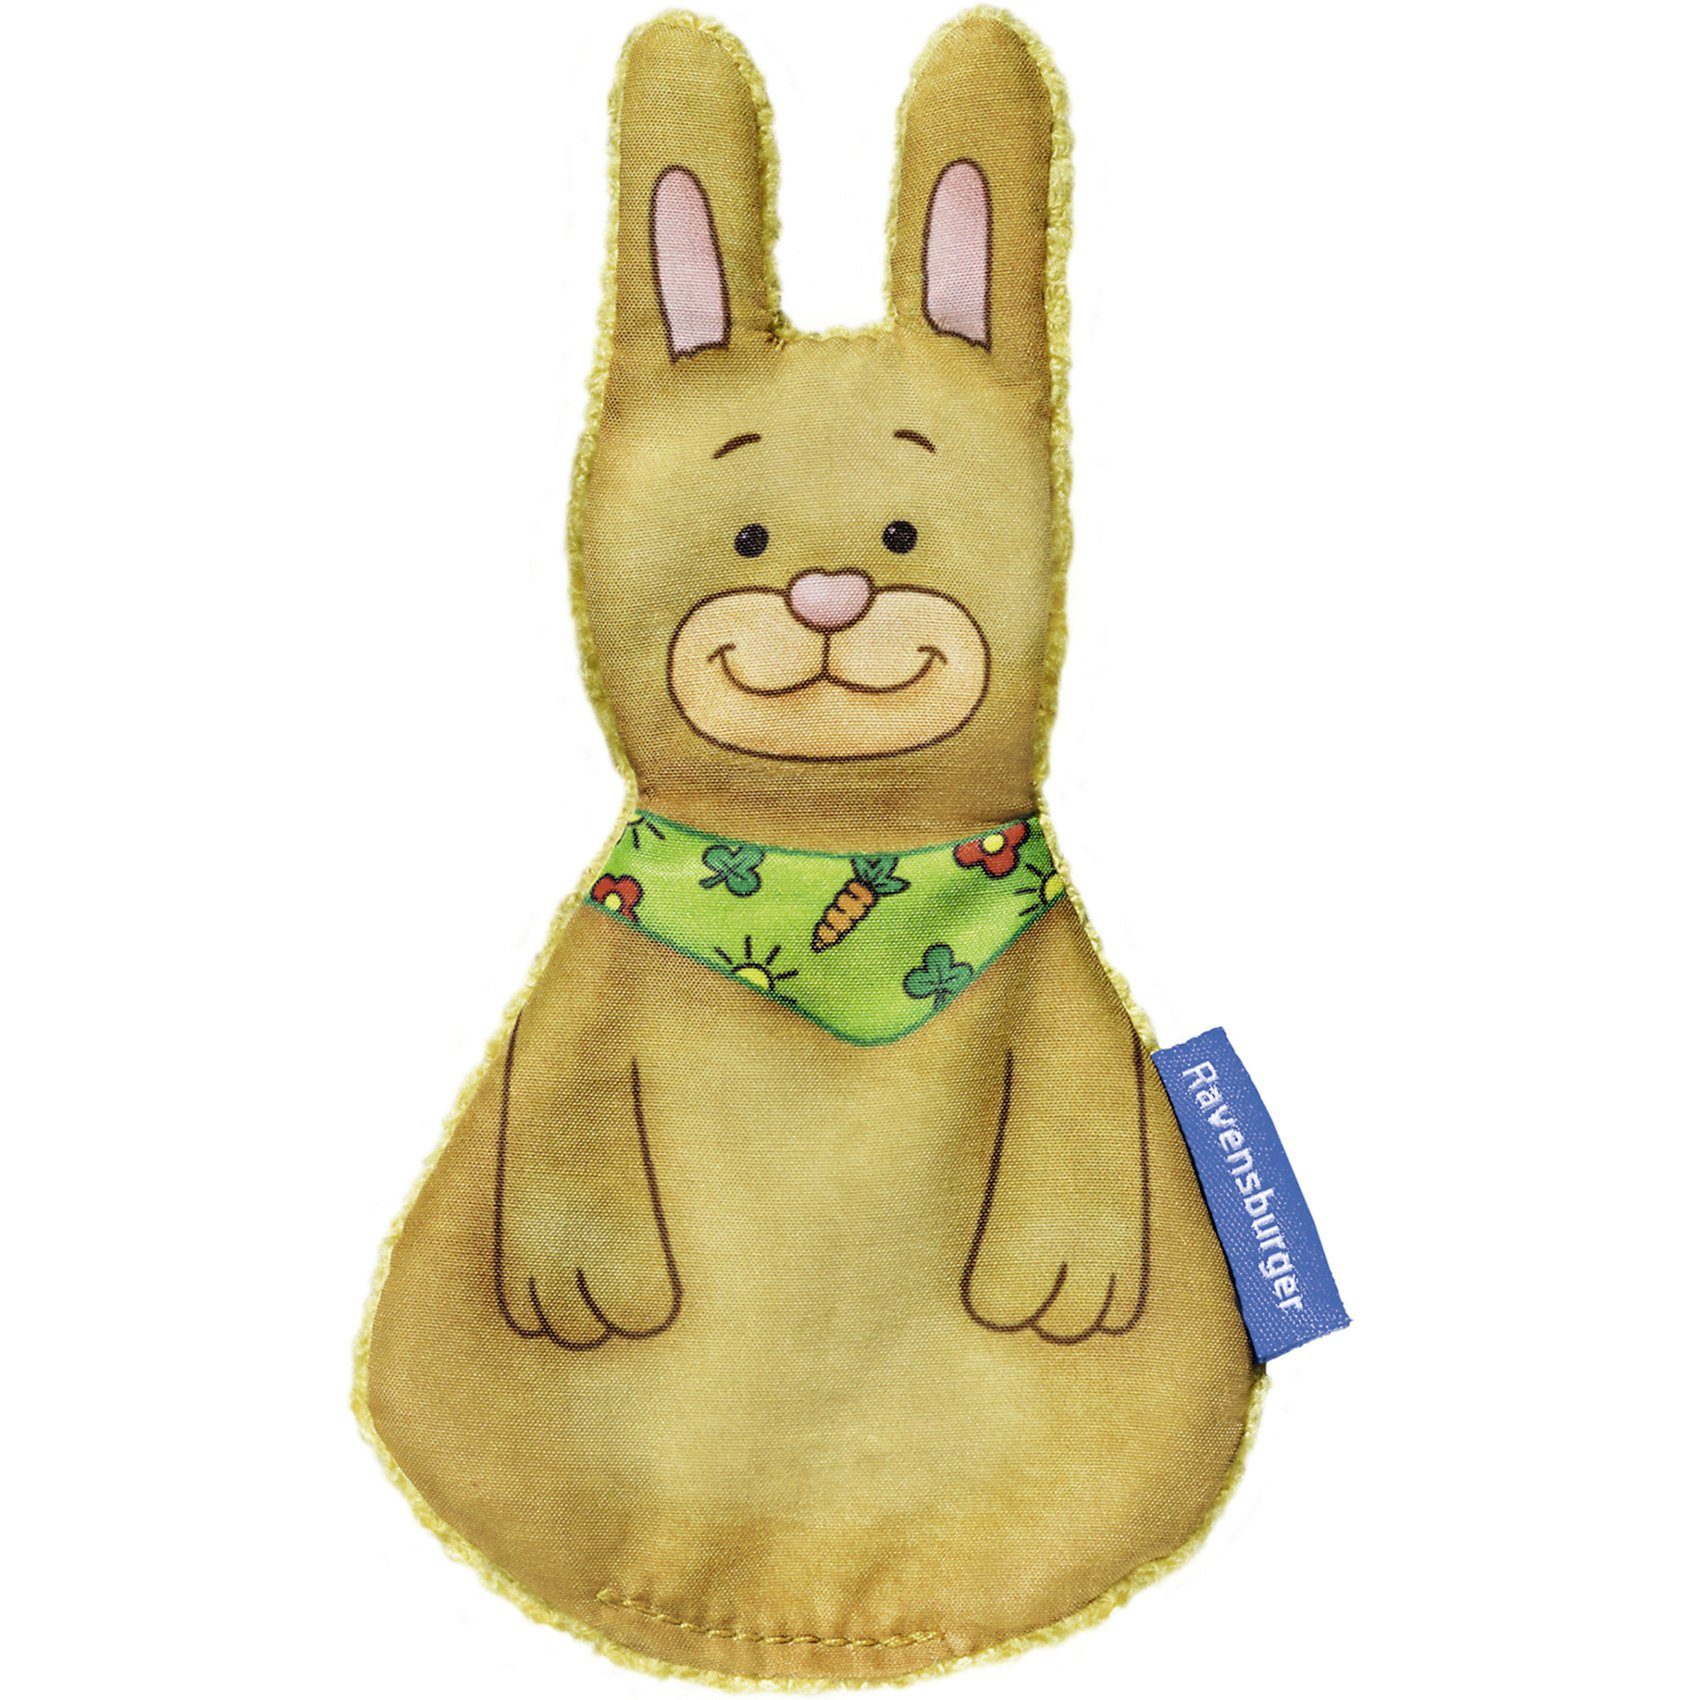 Ravensburger Knistertuch Hase